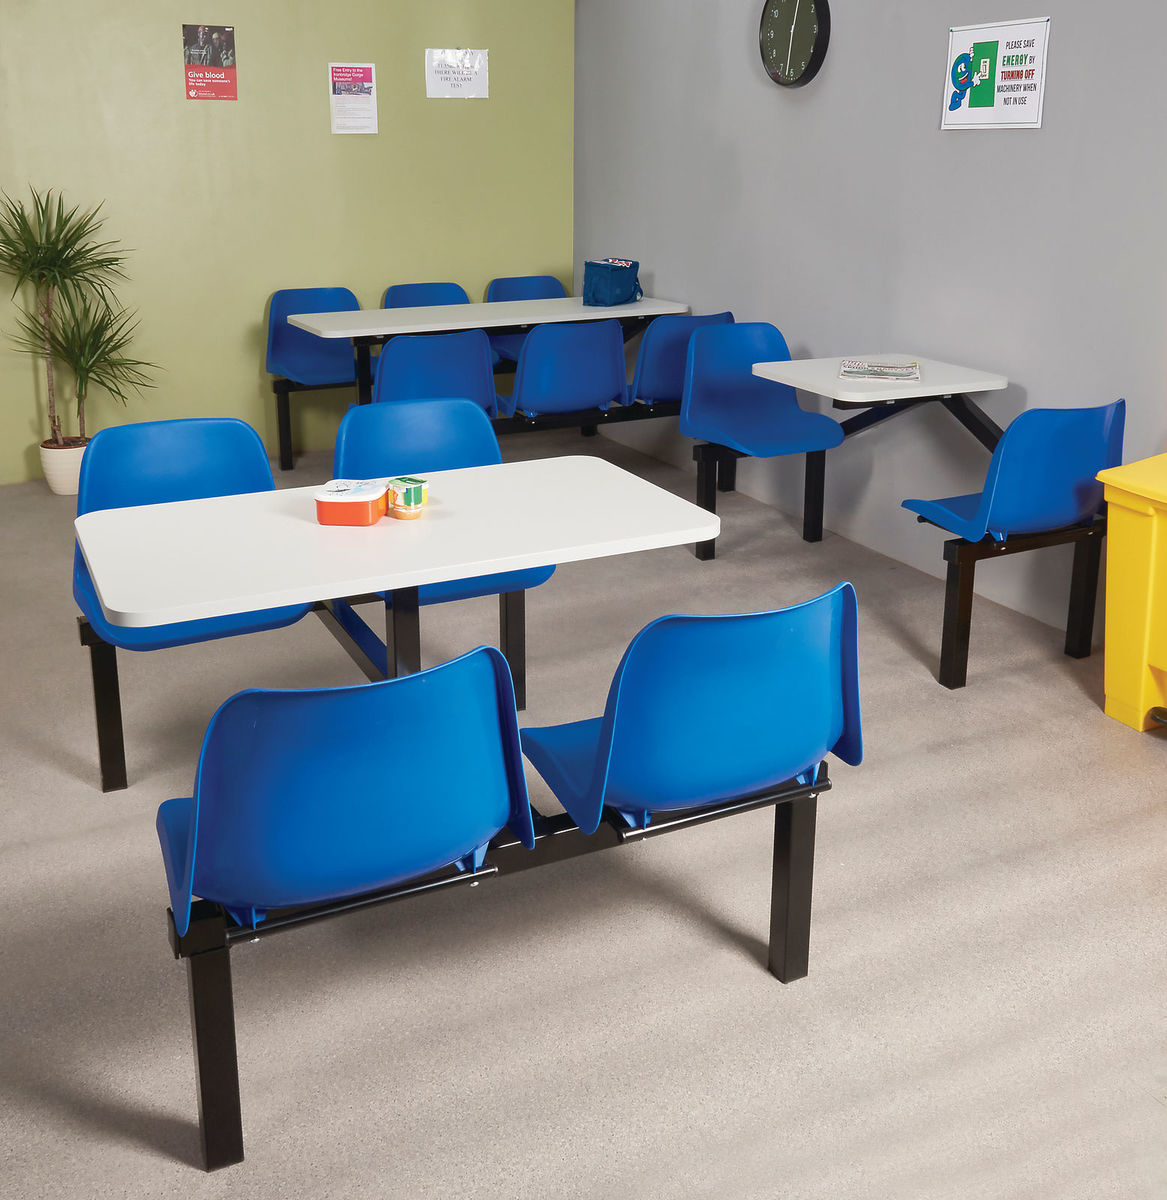 Standard canteen furniture  group shot  1600x1600